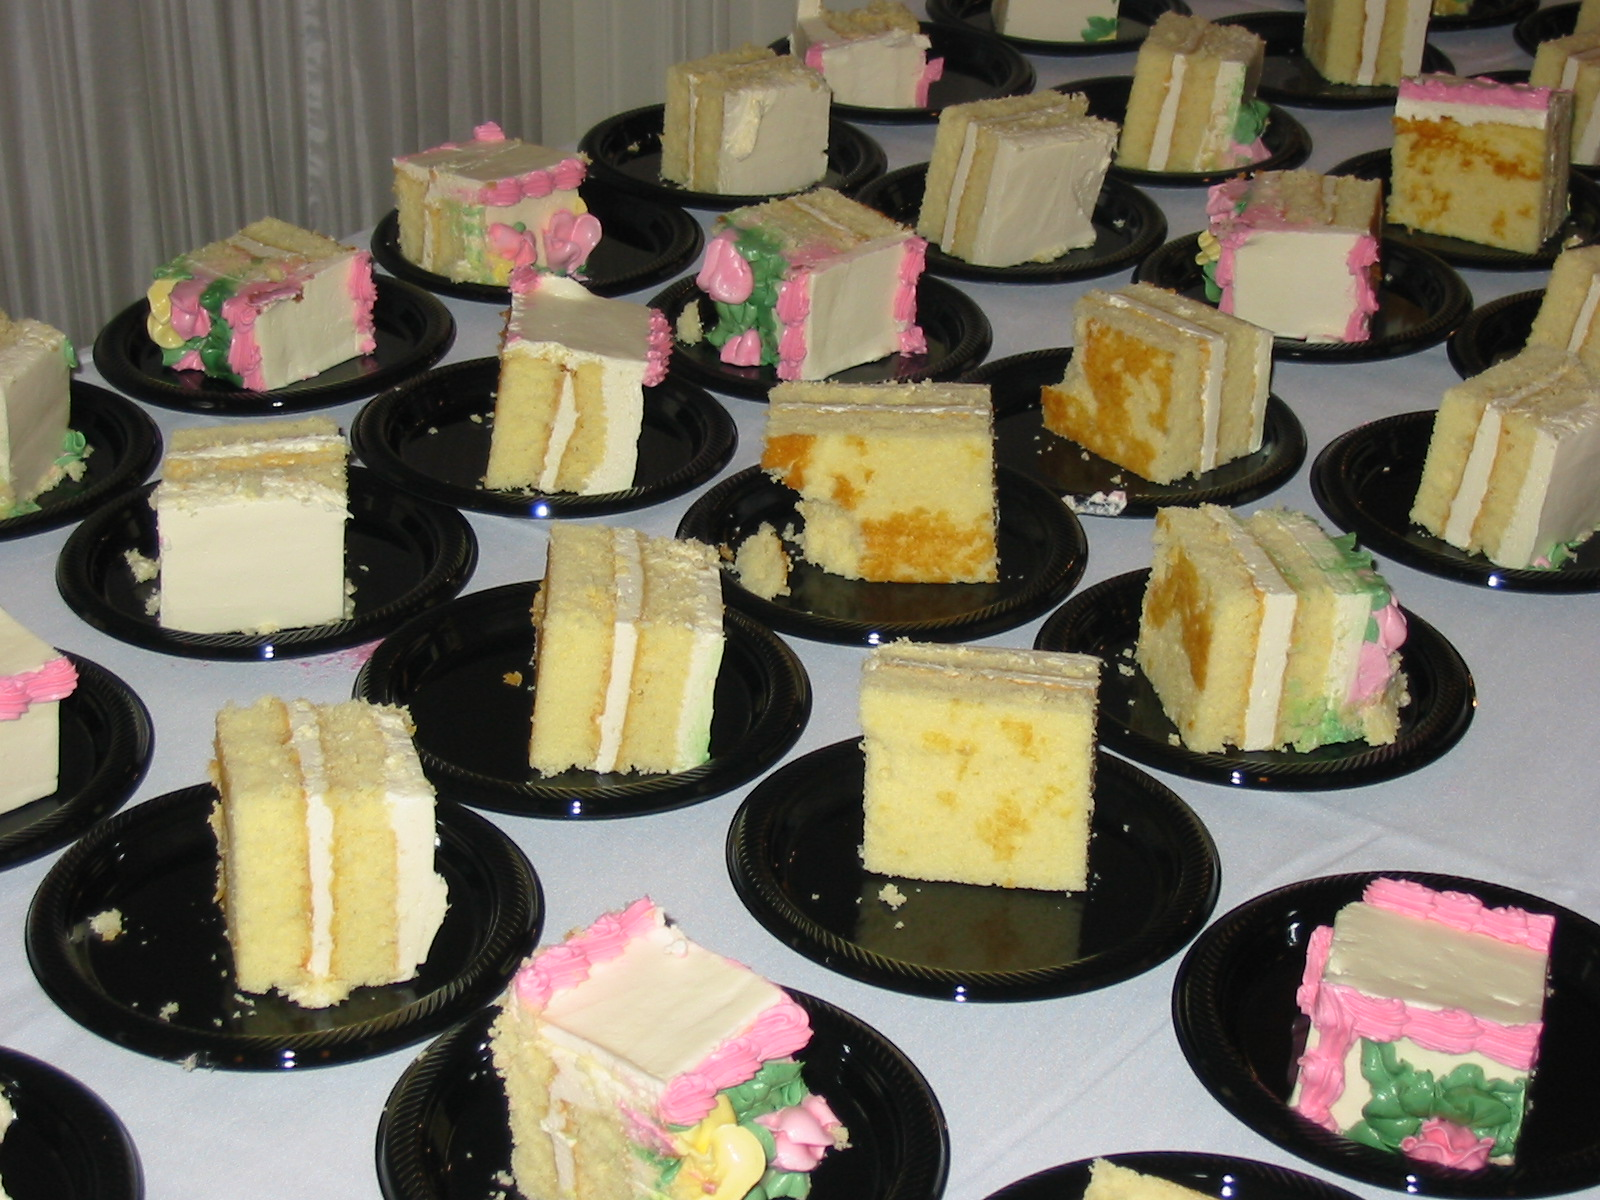 dessert from aunts baby shower dessert 385785 1600